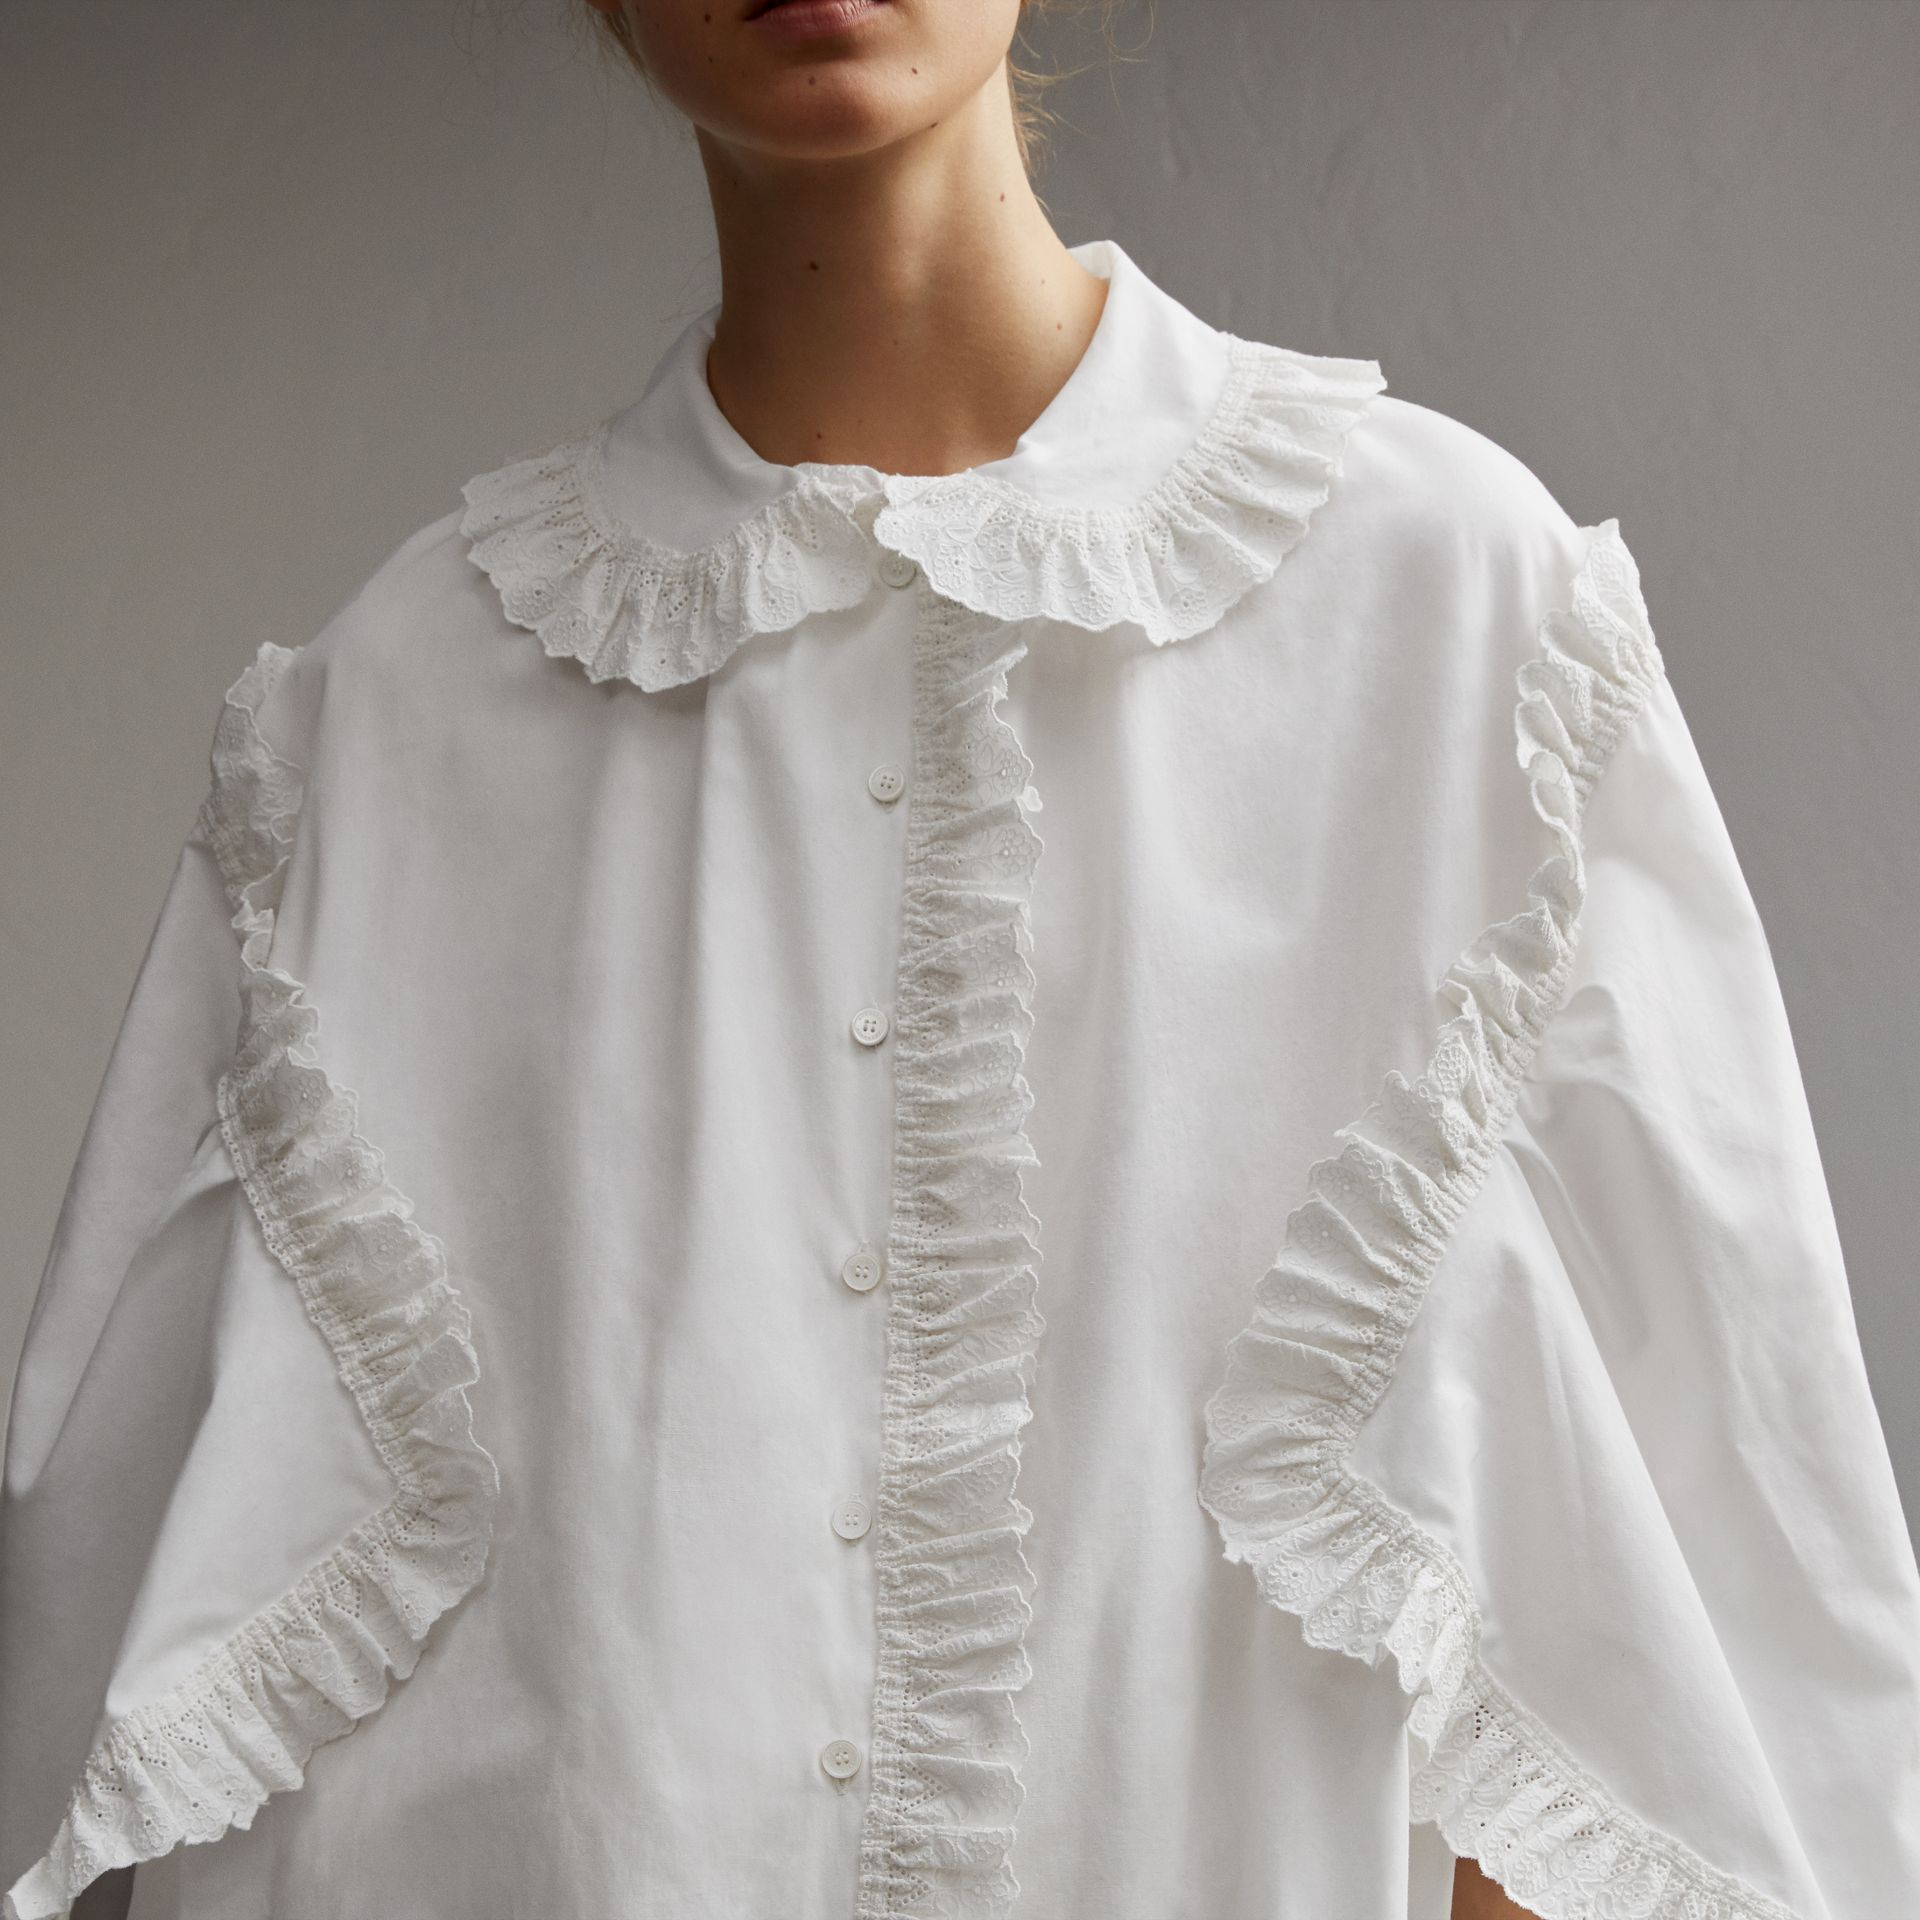 Broderie Anglaise Ruffle Cotton Poplin Shirt in White - Women | Burberry - gallery image 5